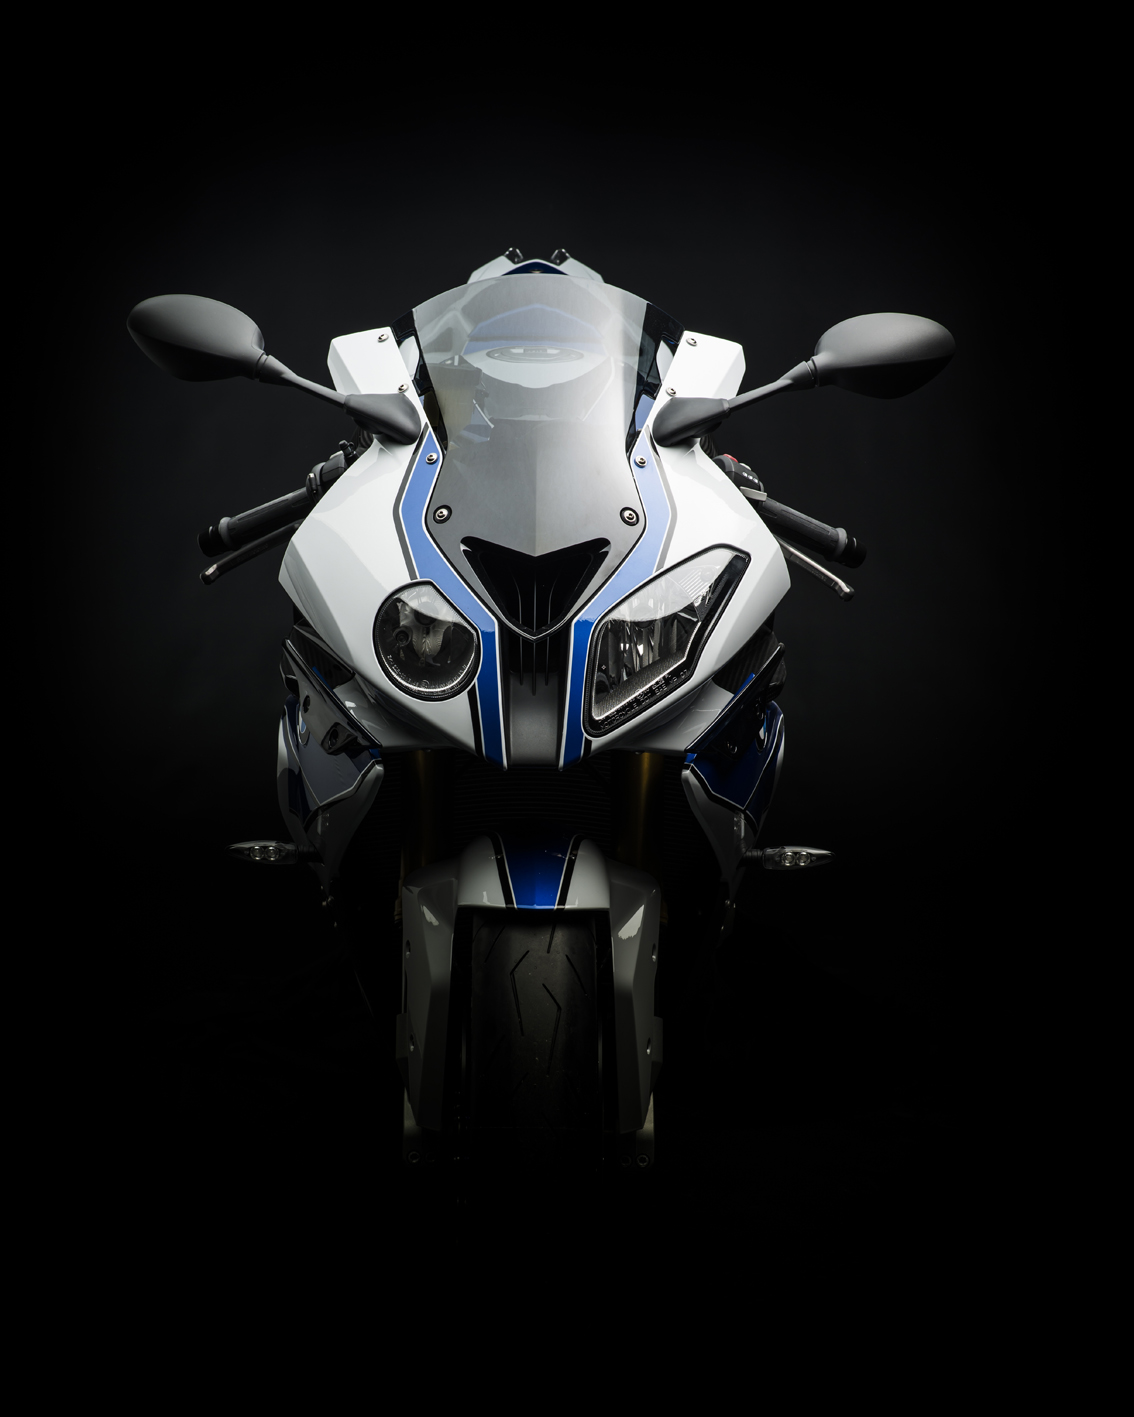 Bmw Hp Motorcycles Might Just Make A Comeback Autoevolution